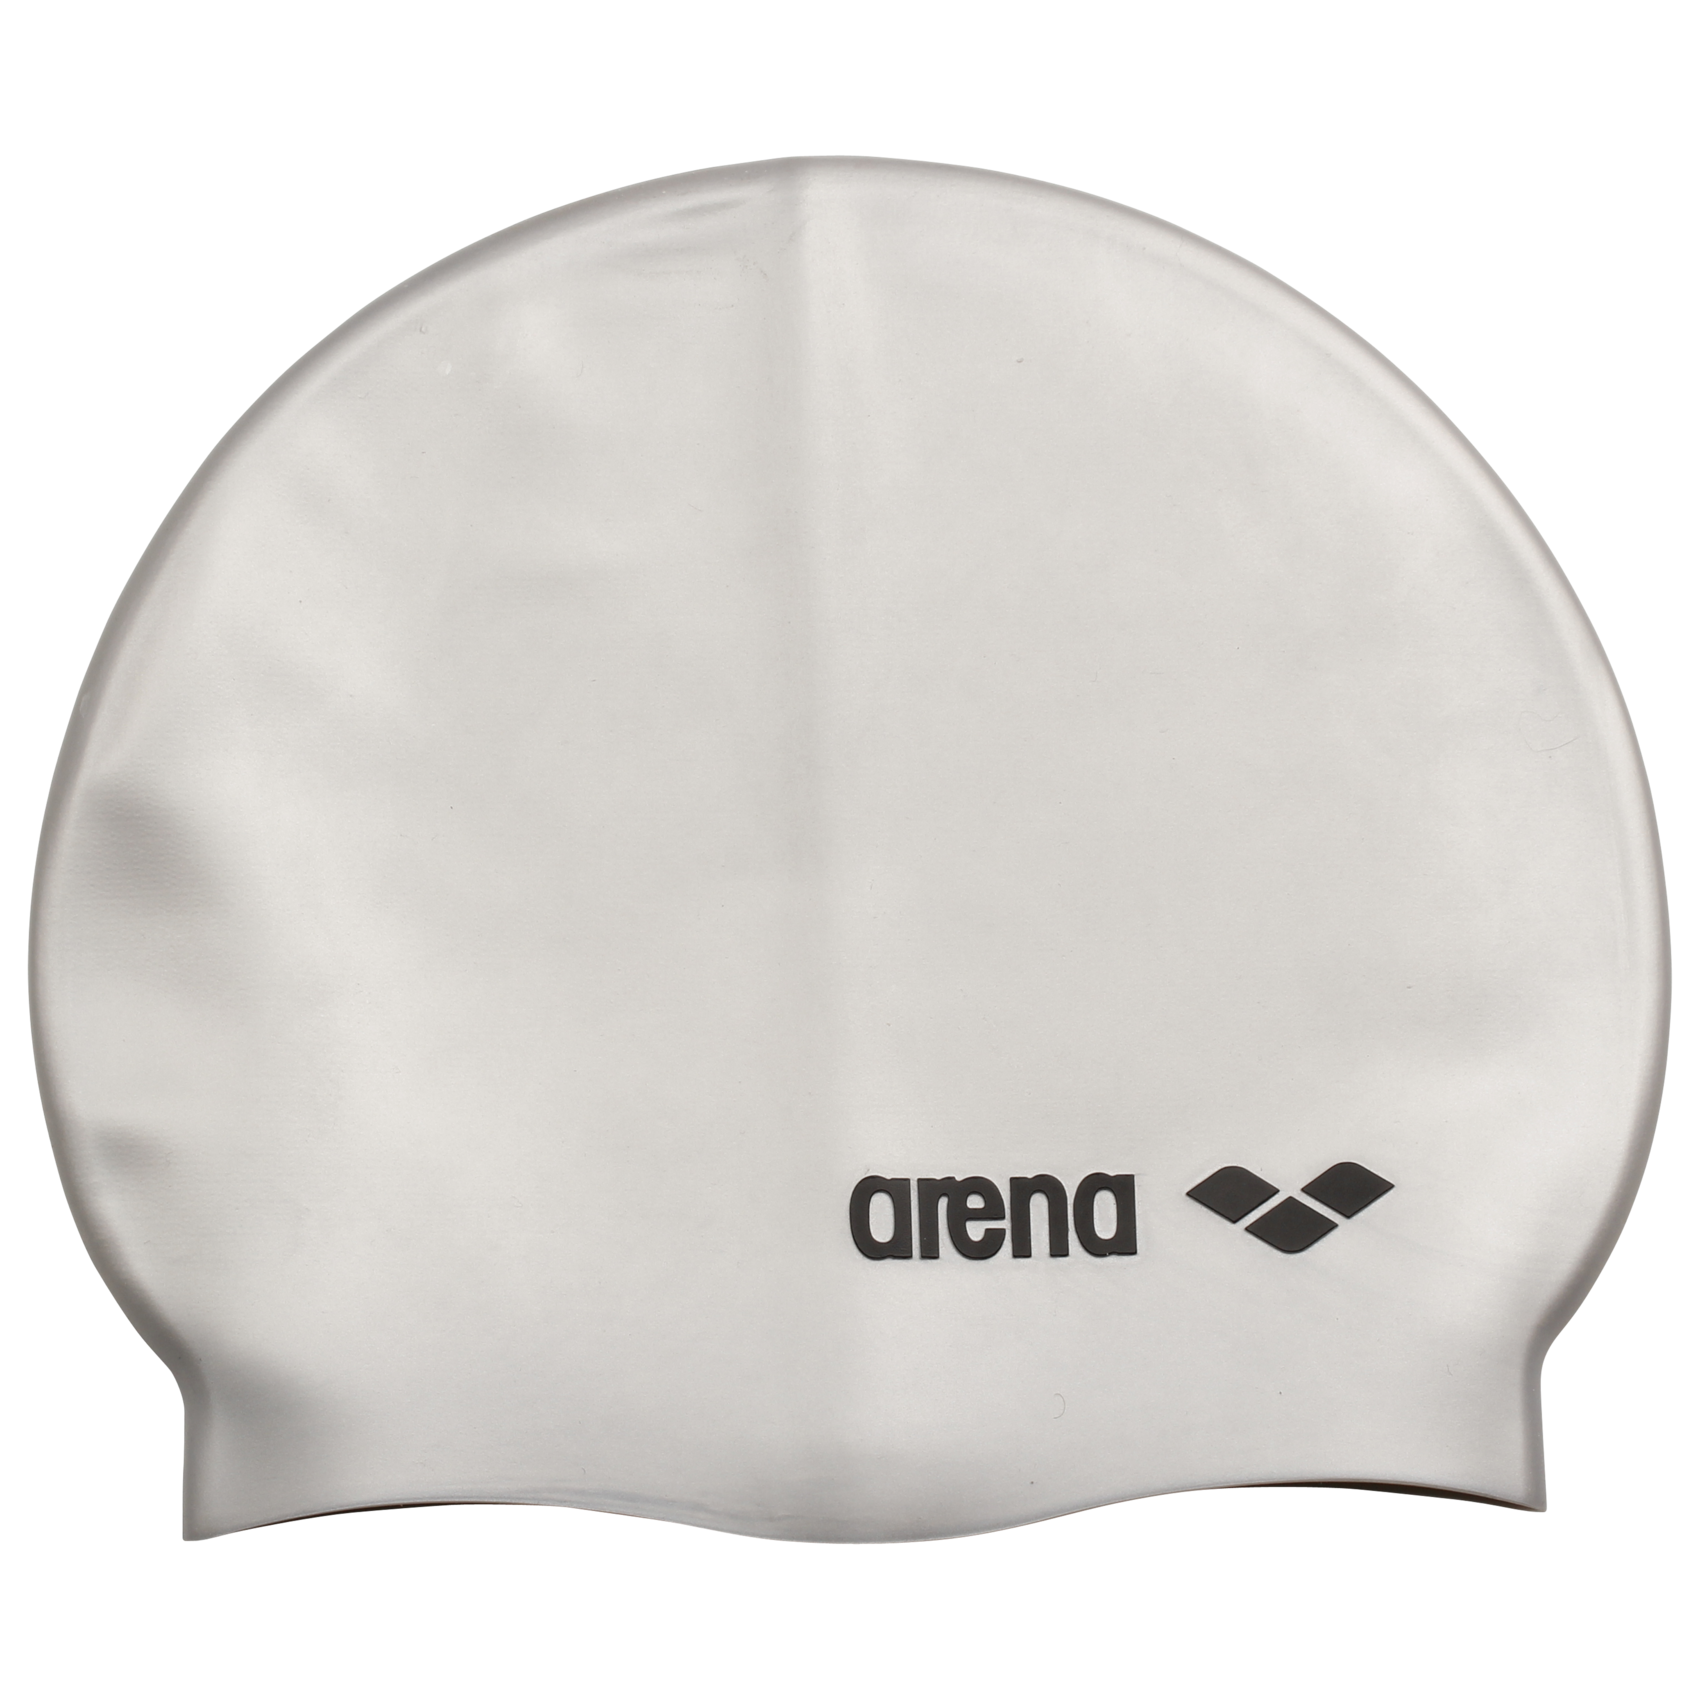 Arena - Classic Silicone Badehætte - Hvid